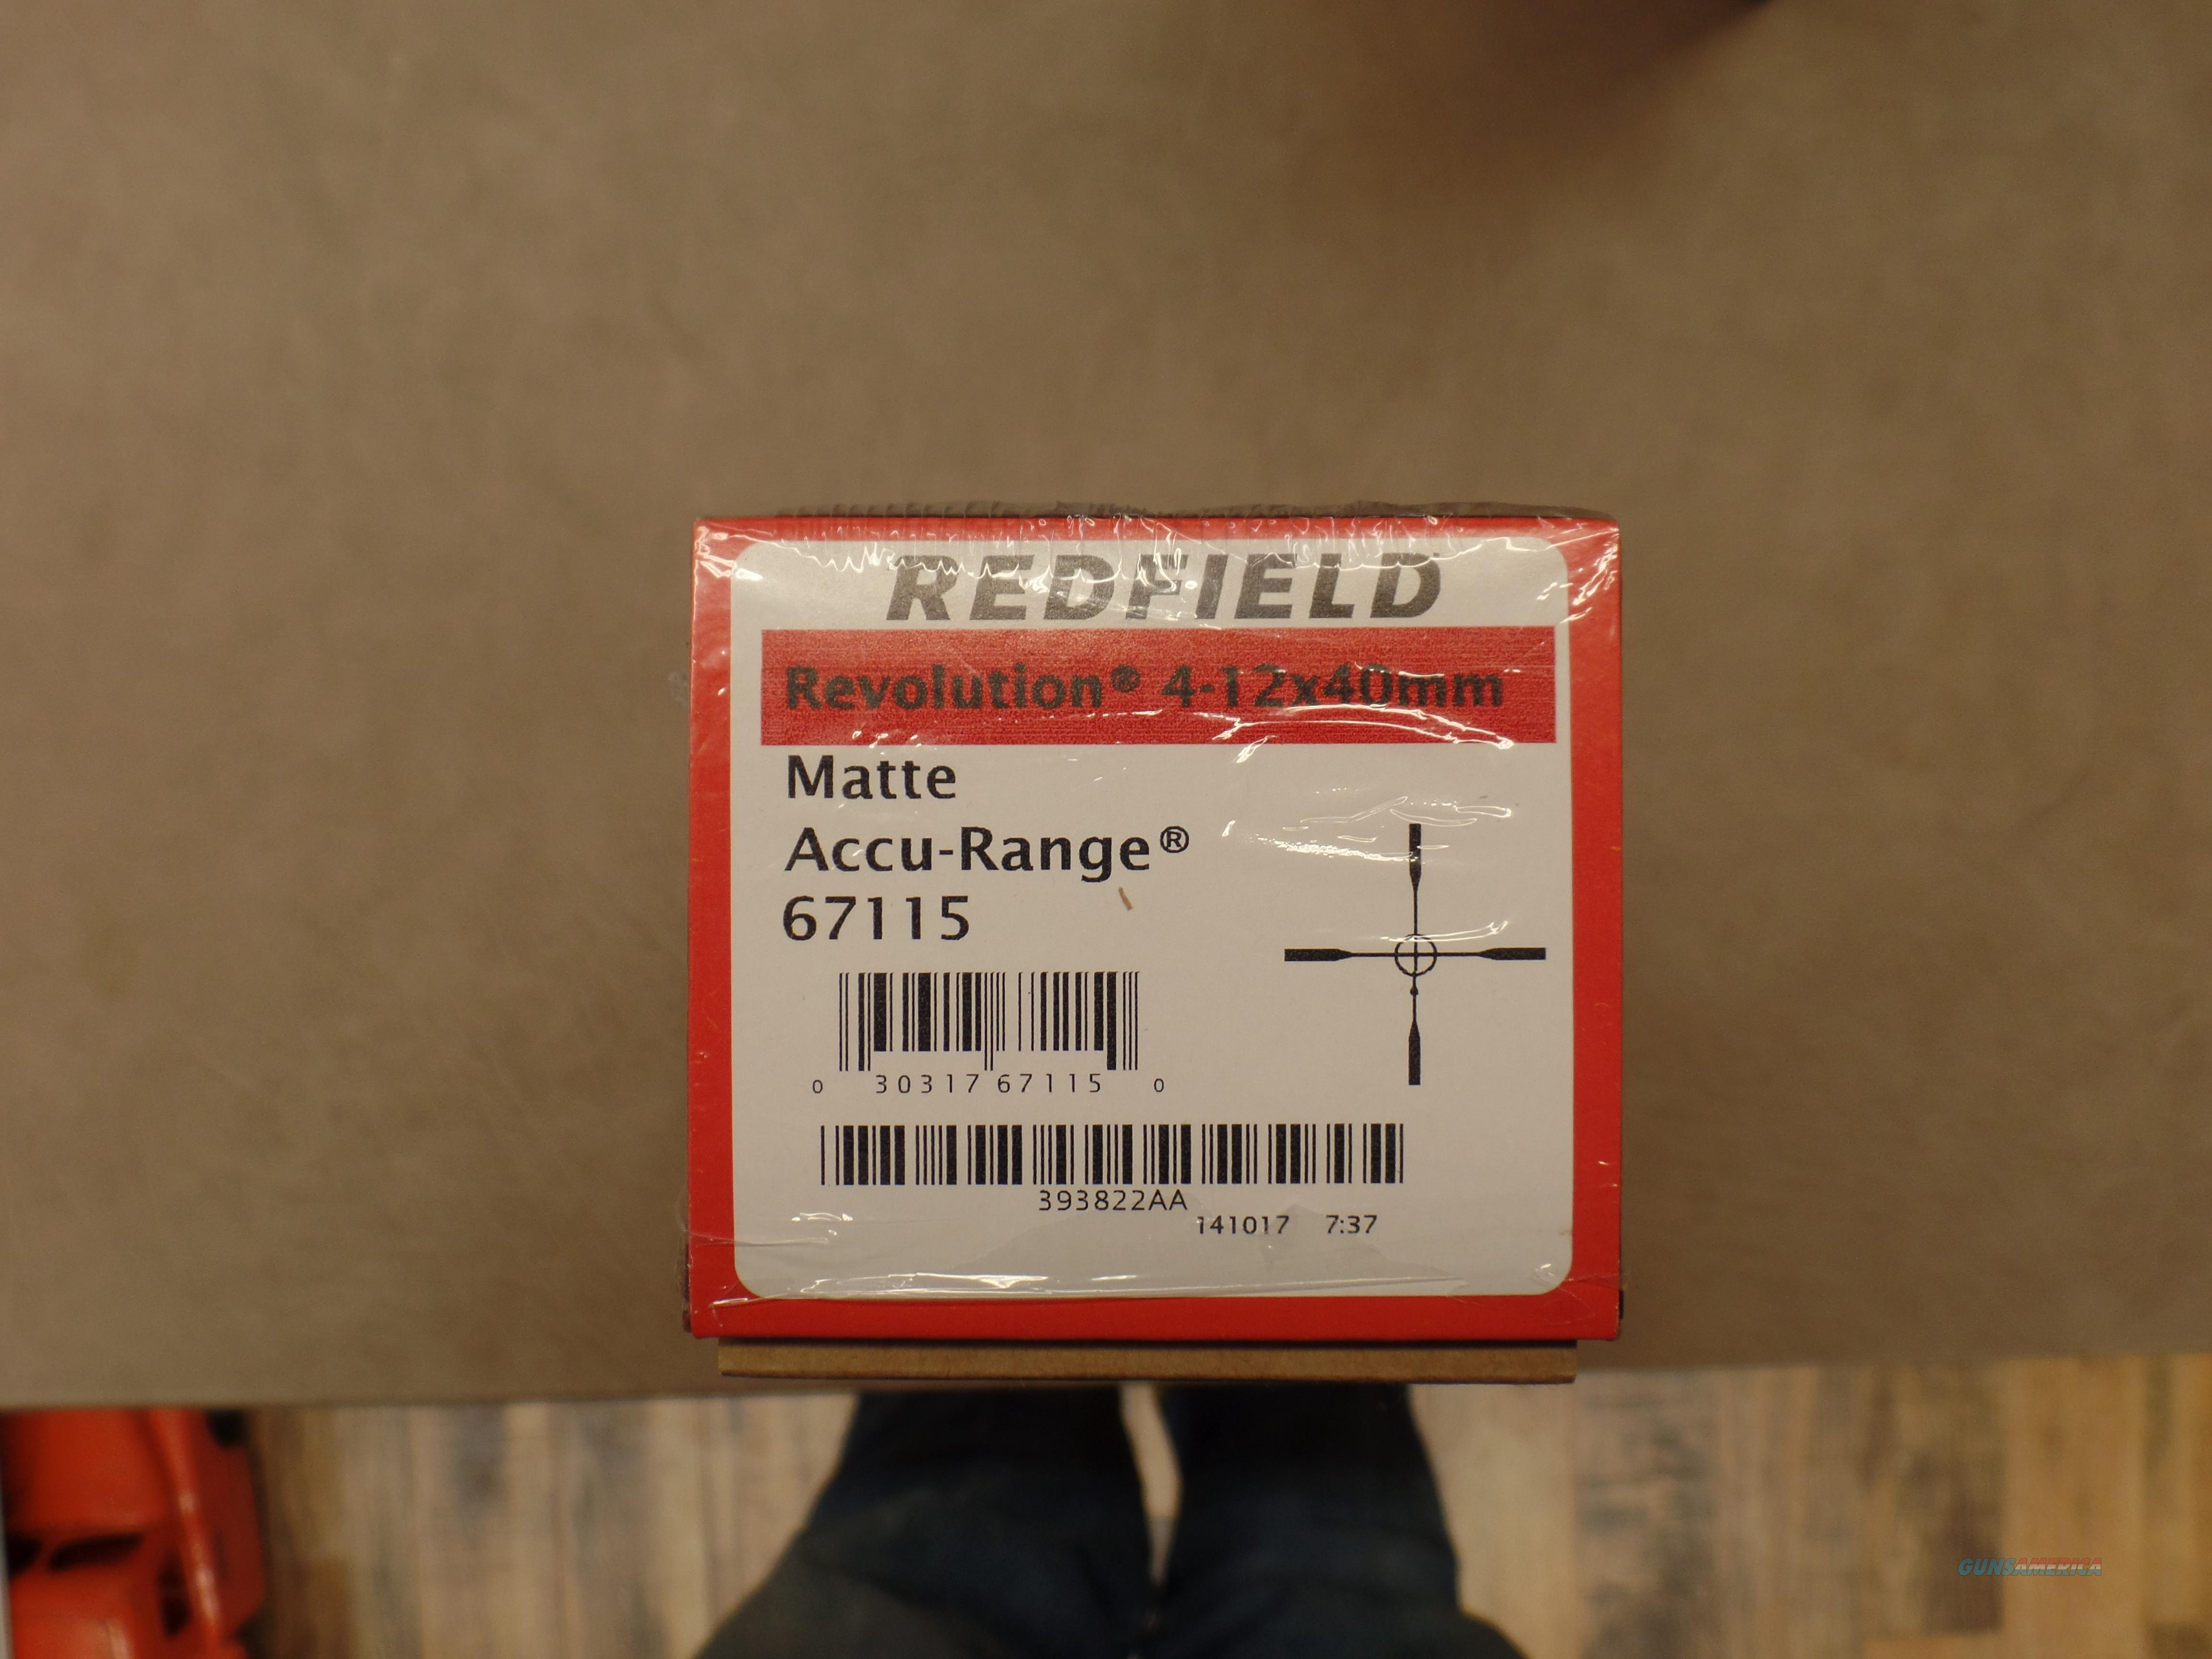 Redfield Revolution 4-12X40 Matte Accu-Range  Non-Guns > Scopes/Mounts/Rings & Optics > Rifle Scopes > Variable Focal Length